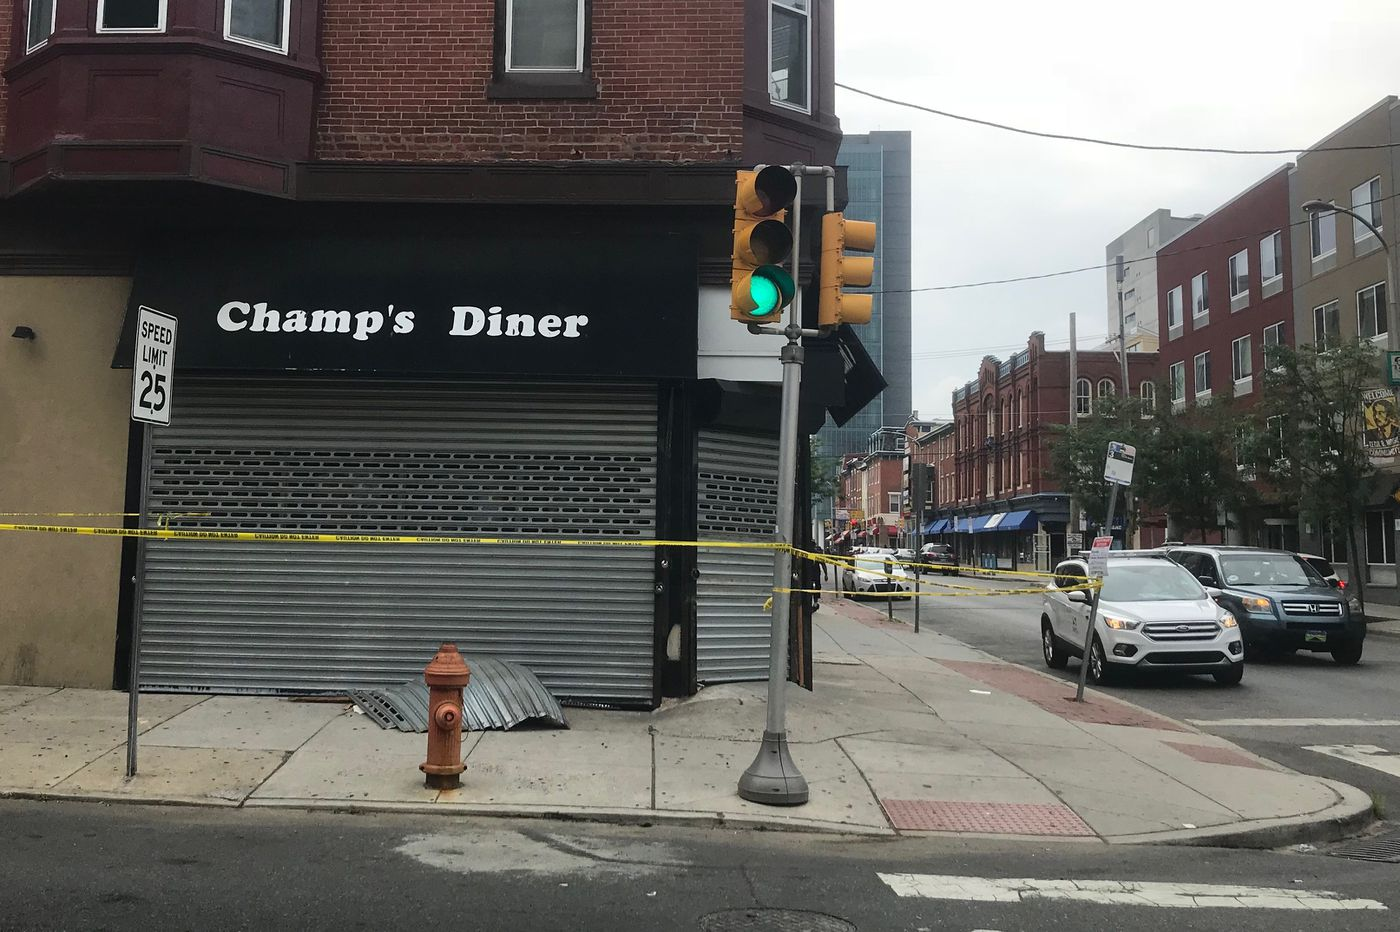 Temple favorite Champs Diner reopened Friday morning after an Uber resulted in a temporary closing.